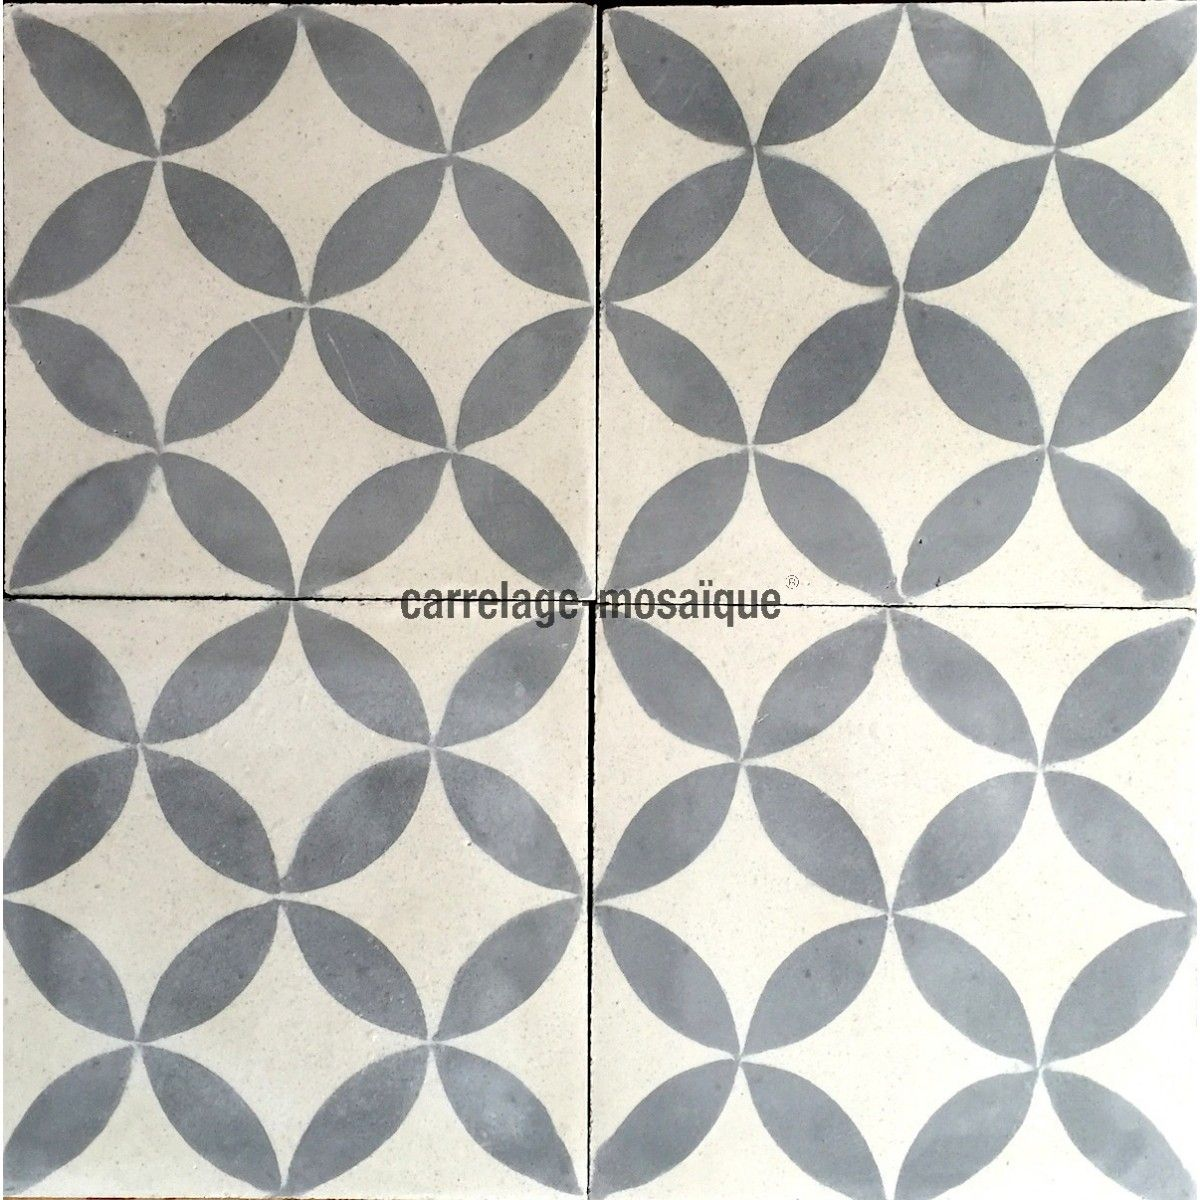 Carrelage ciment pas cher 1m2 modele sampa gris for Carrelage mosaique